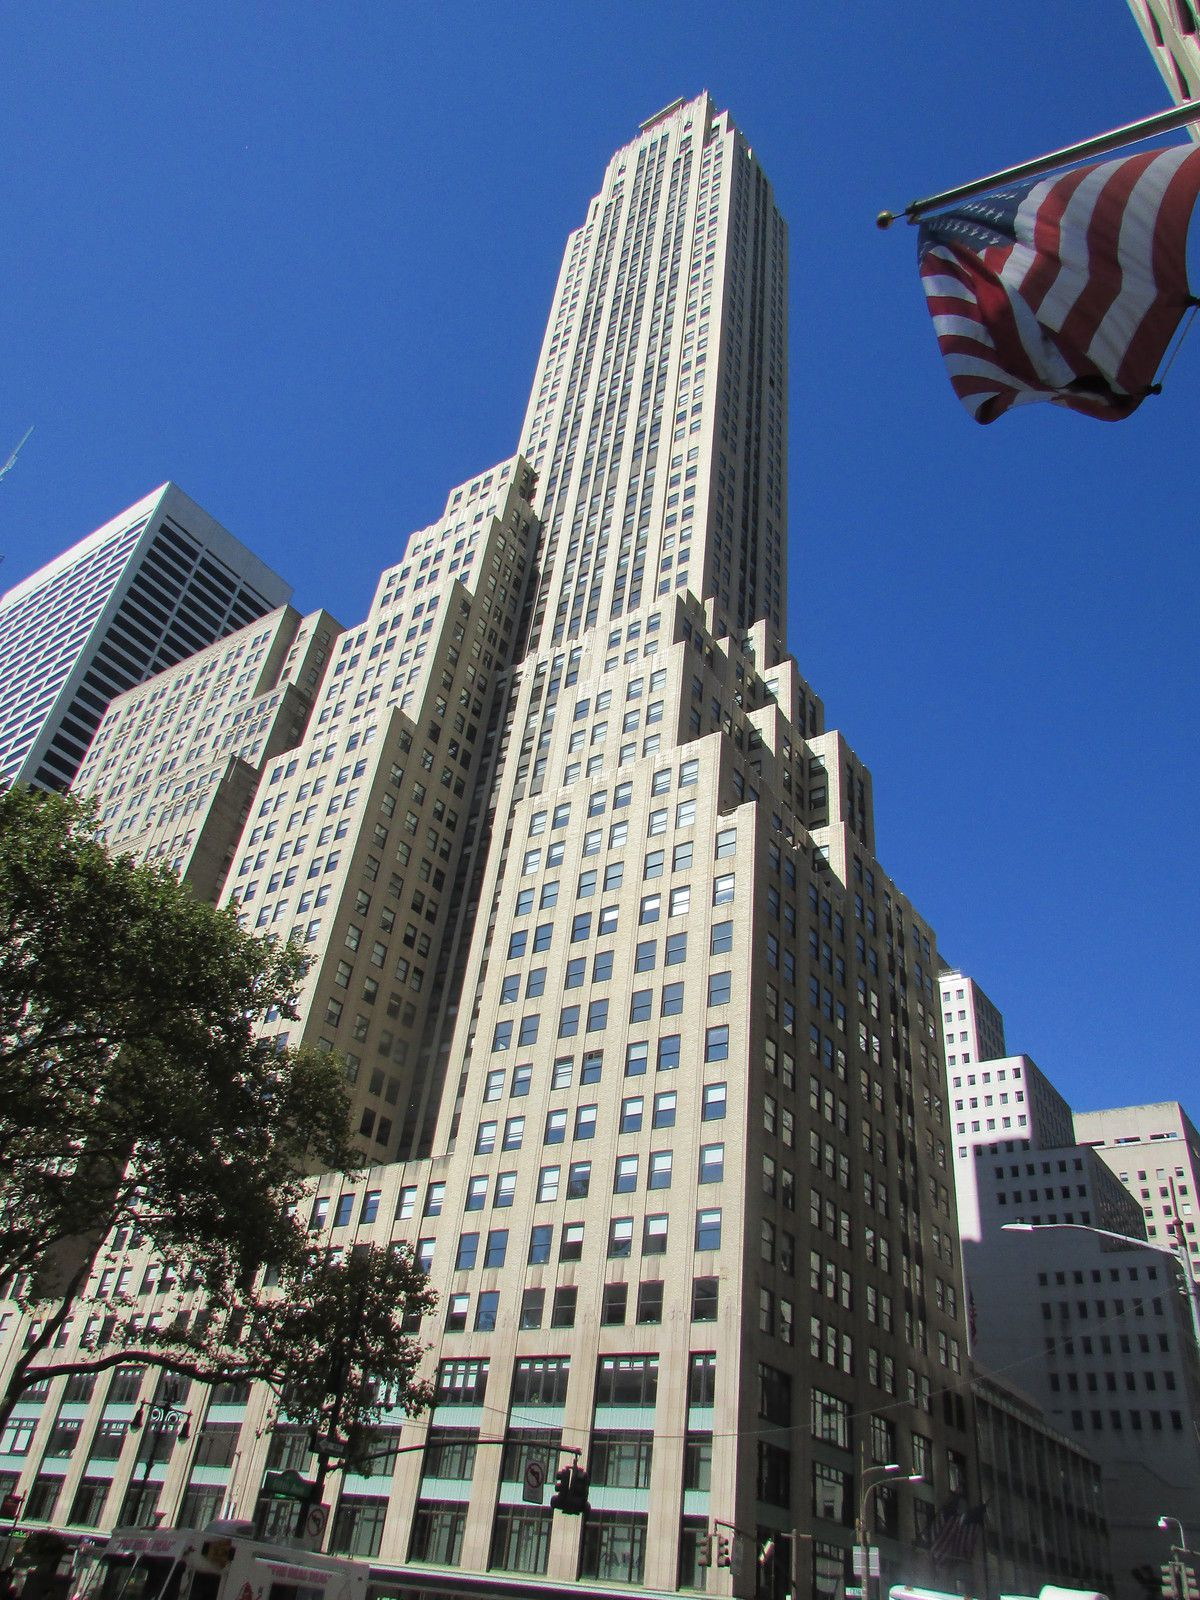 The French Building dans Midtown.